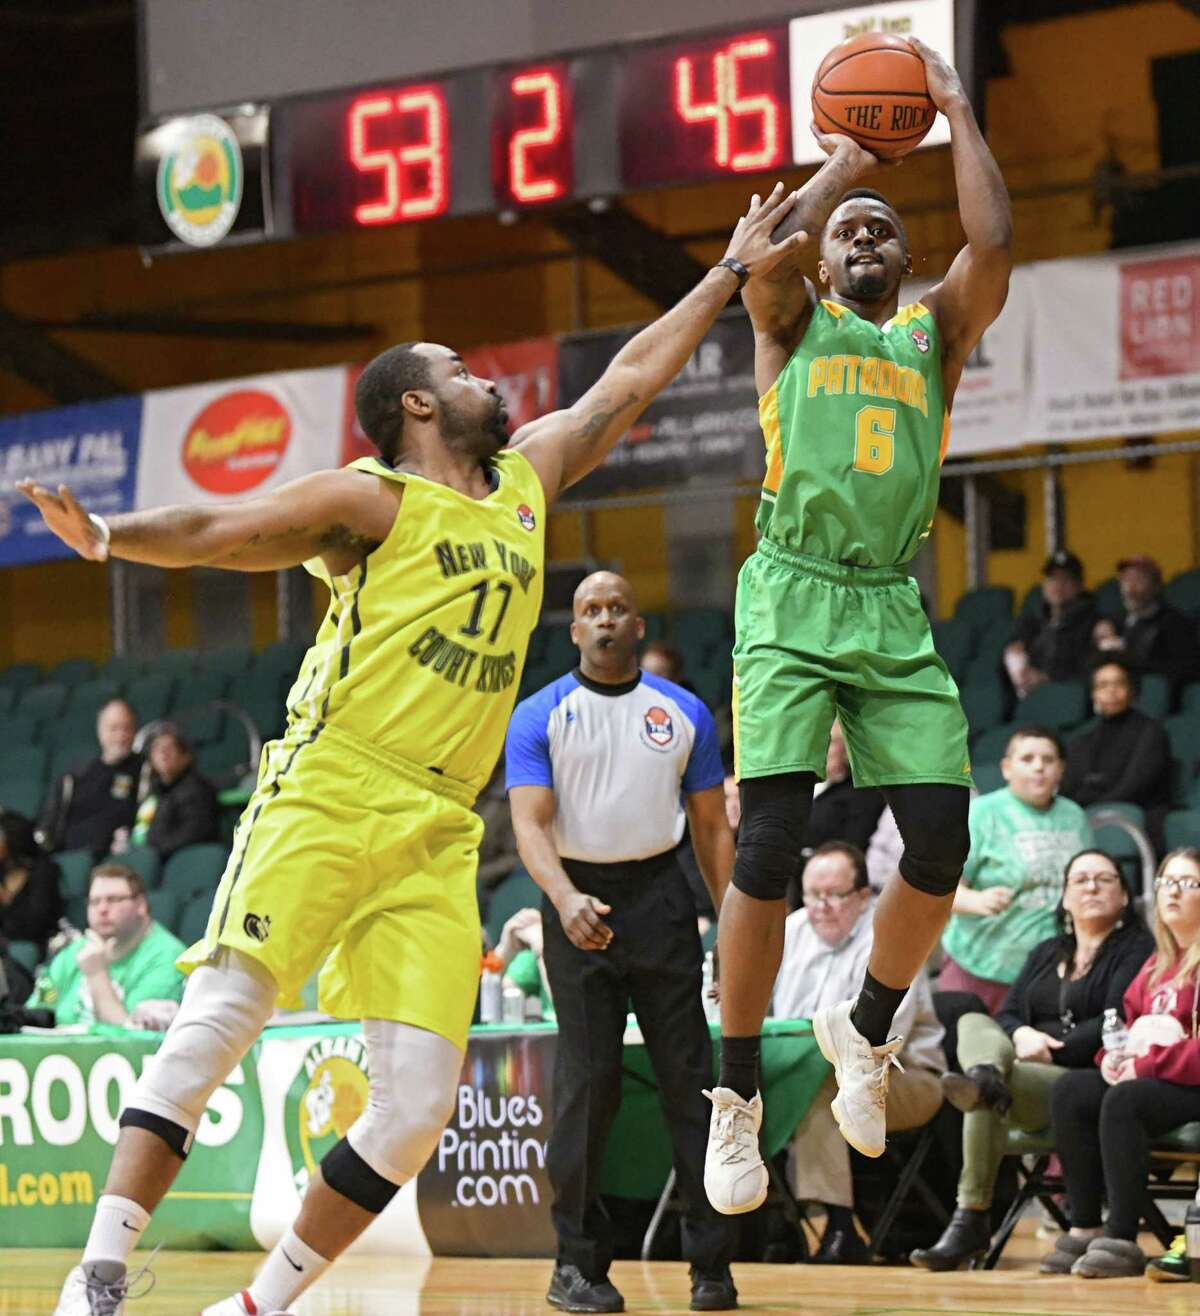 Albany Patroons' Joshua Cameron takes shot guarded by New York Court Kings' Jerrome Jones during a basketball game at the Washington Avenue Armory on Monday, March 18, 2019 in Albany, N.Y. (Lori Van Buren/Times Union)